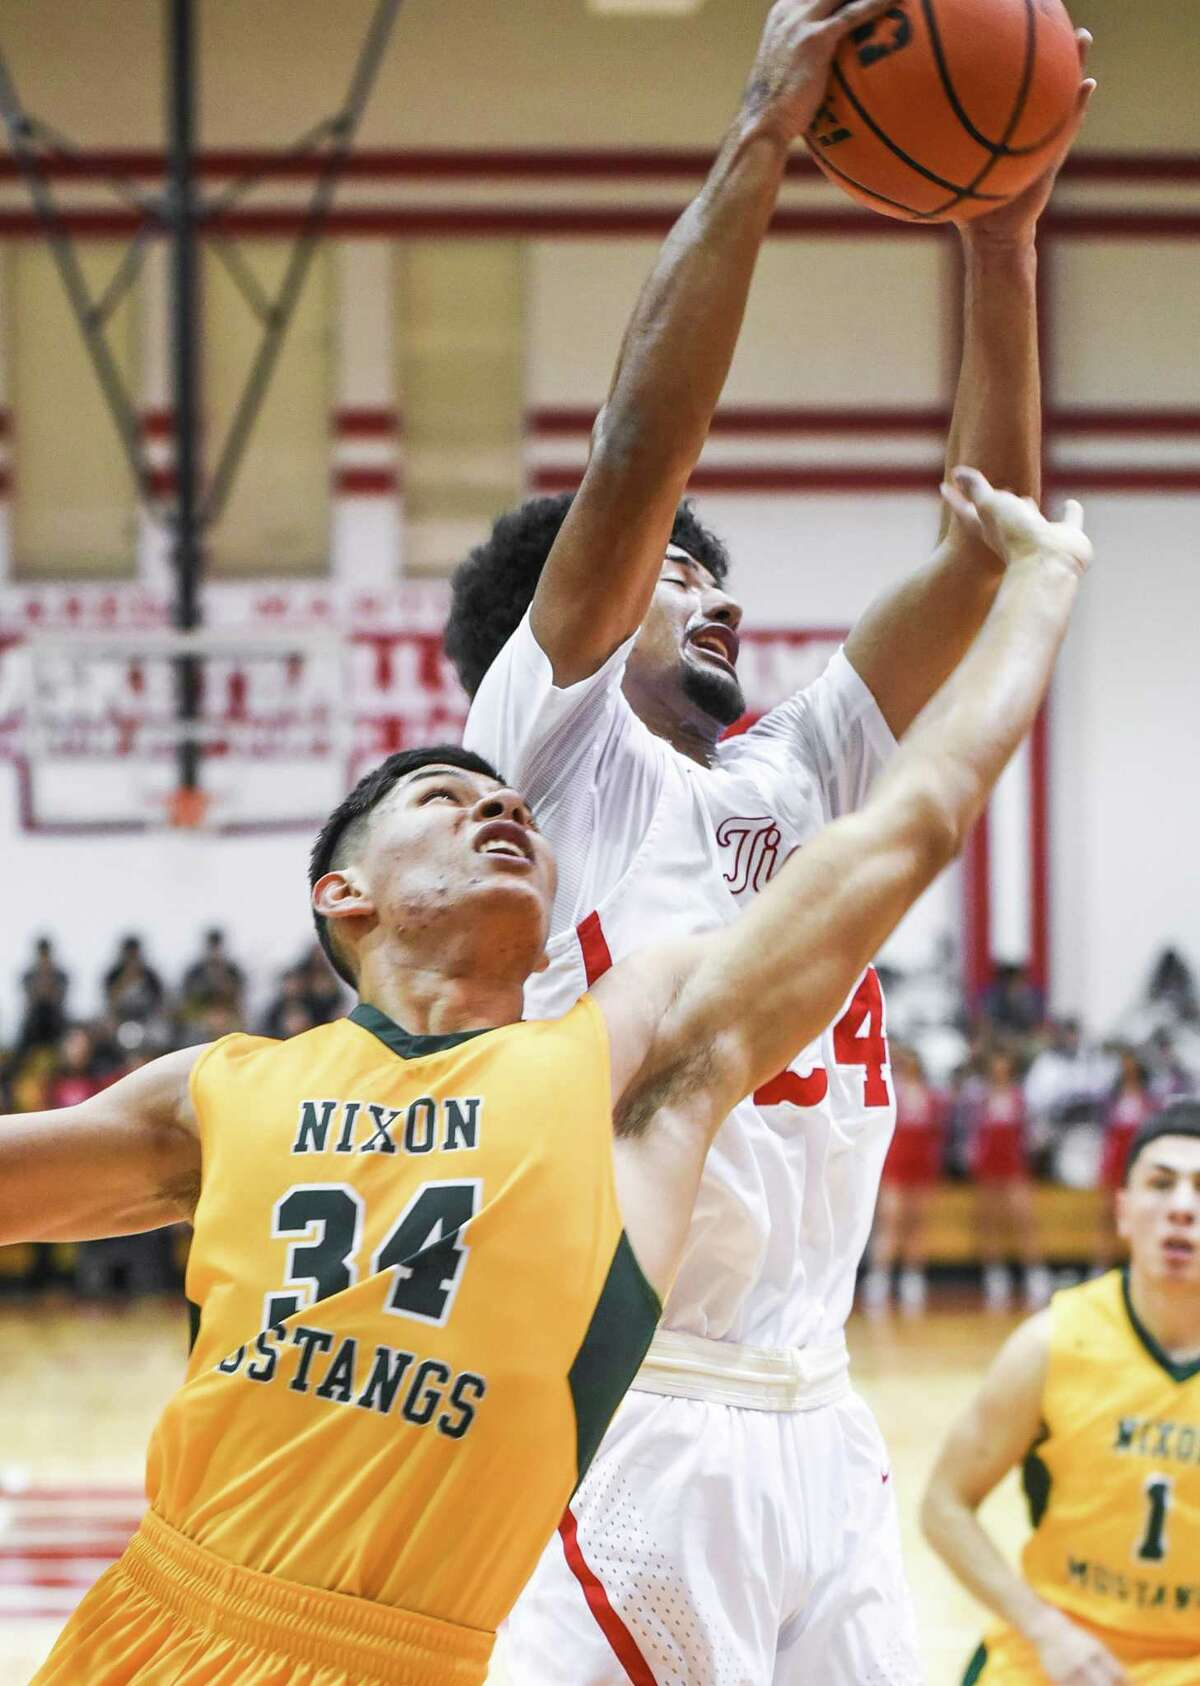 Nixon (30-6, 15-1 District 31-5A) moves on to face CC Ray in the area round of the UIL 5A basketball playoffs later this week. Martin (21-13, 14-2) is set to meet CC Veterans Memorial.